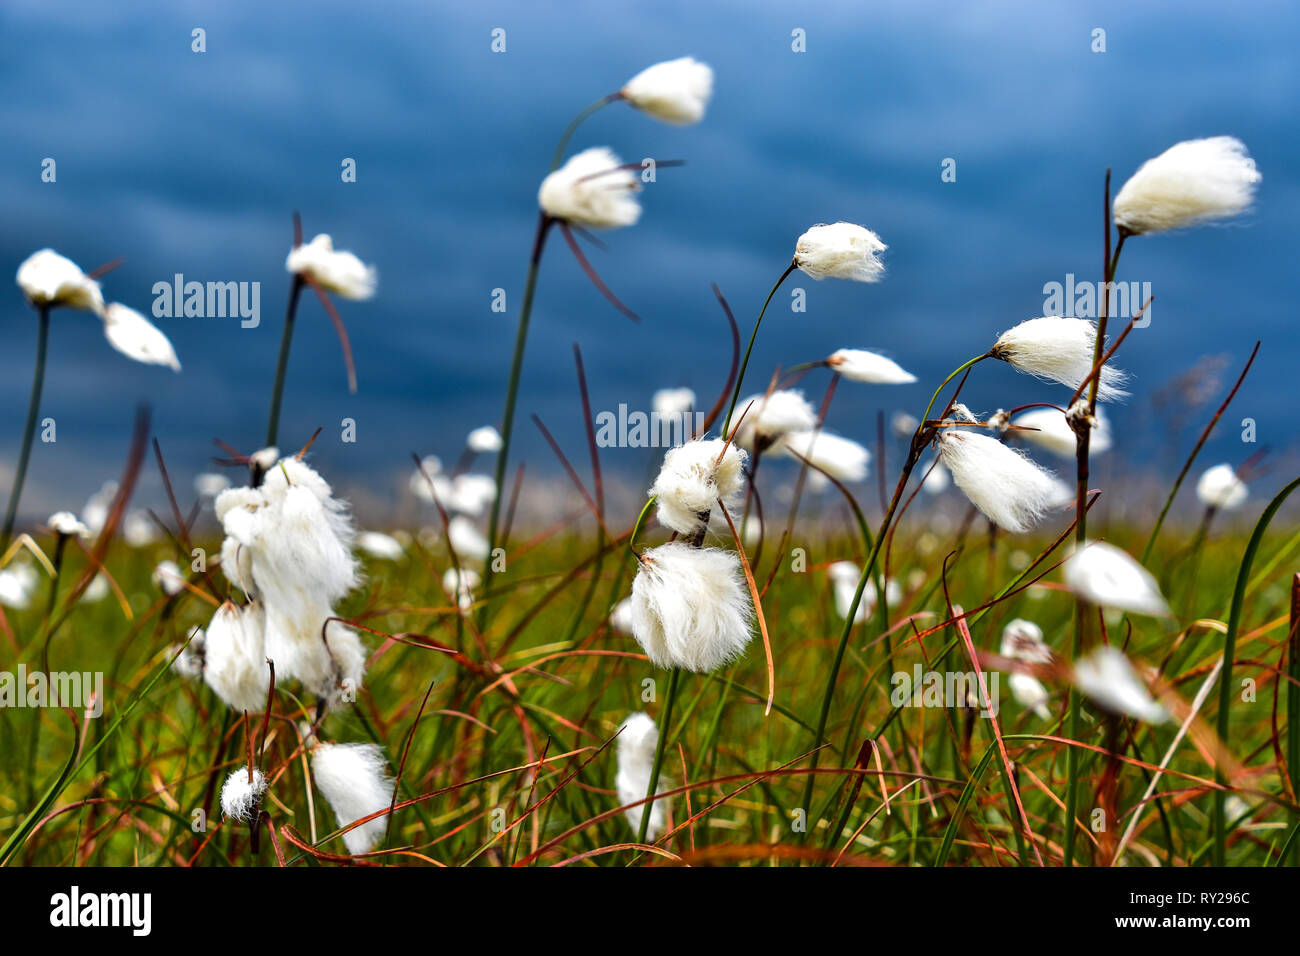 Cotton Grass blowing in the wind against backdrop of ominous dark skies - Stock Image